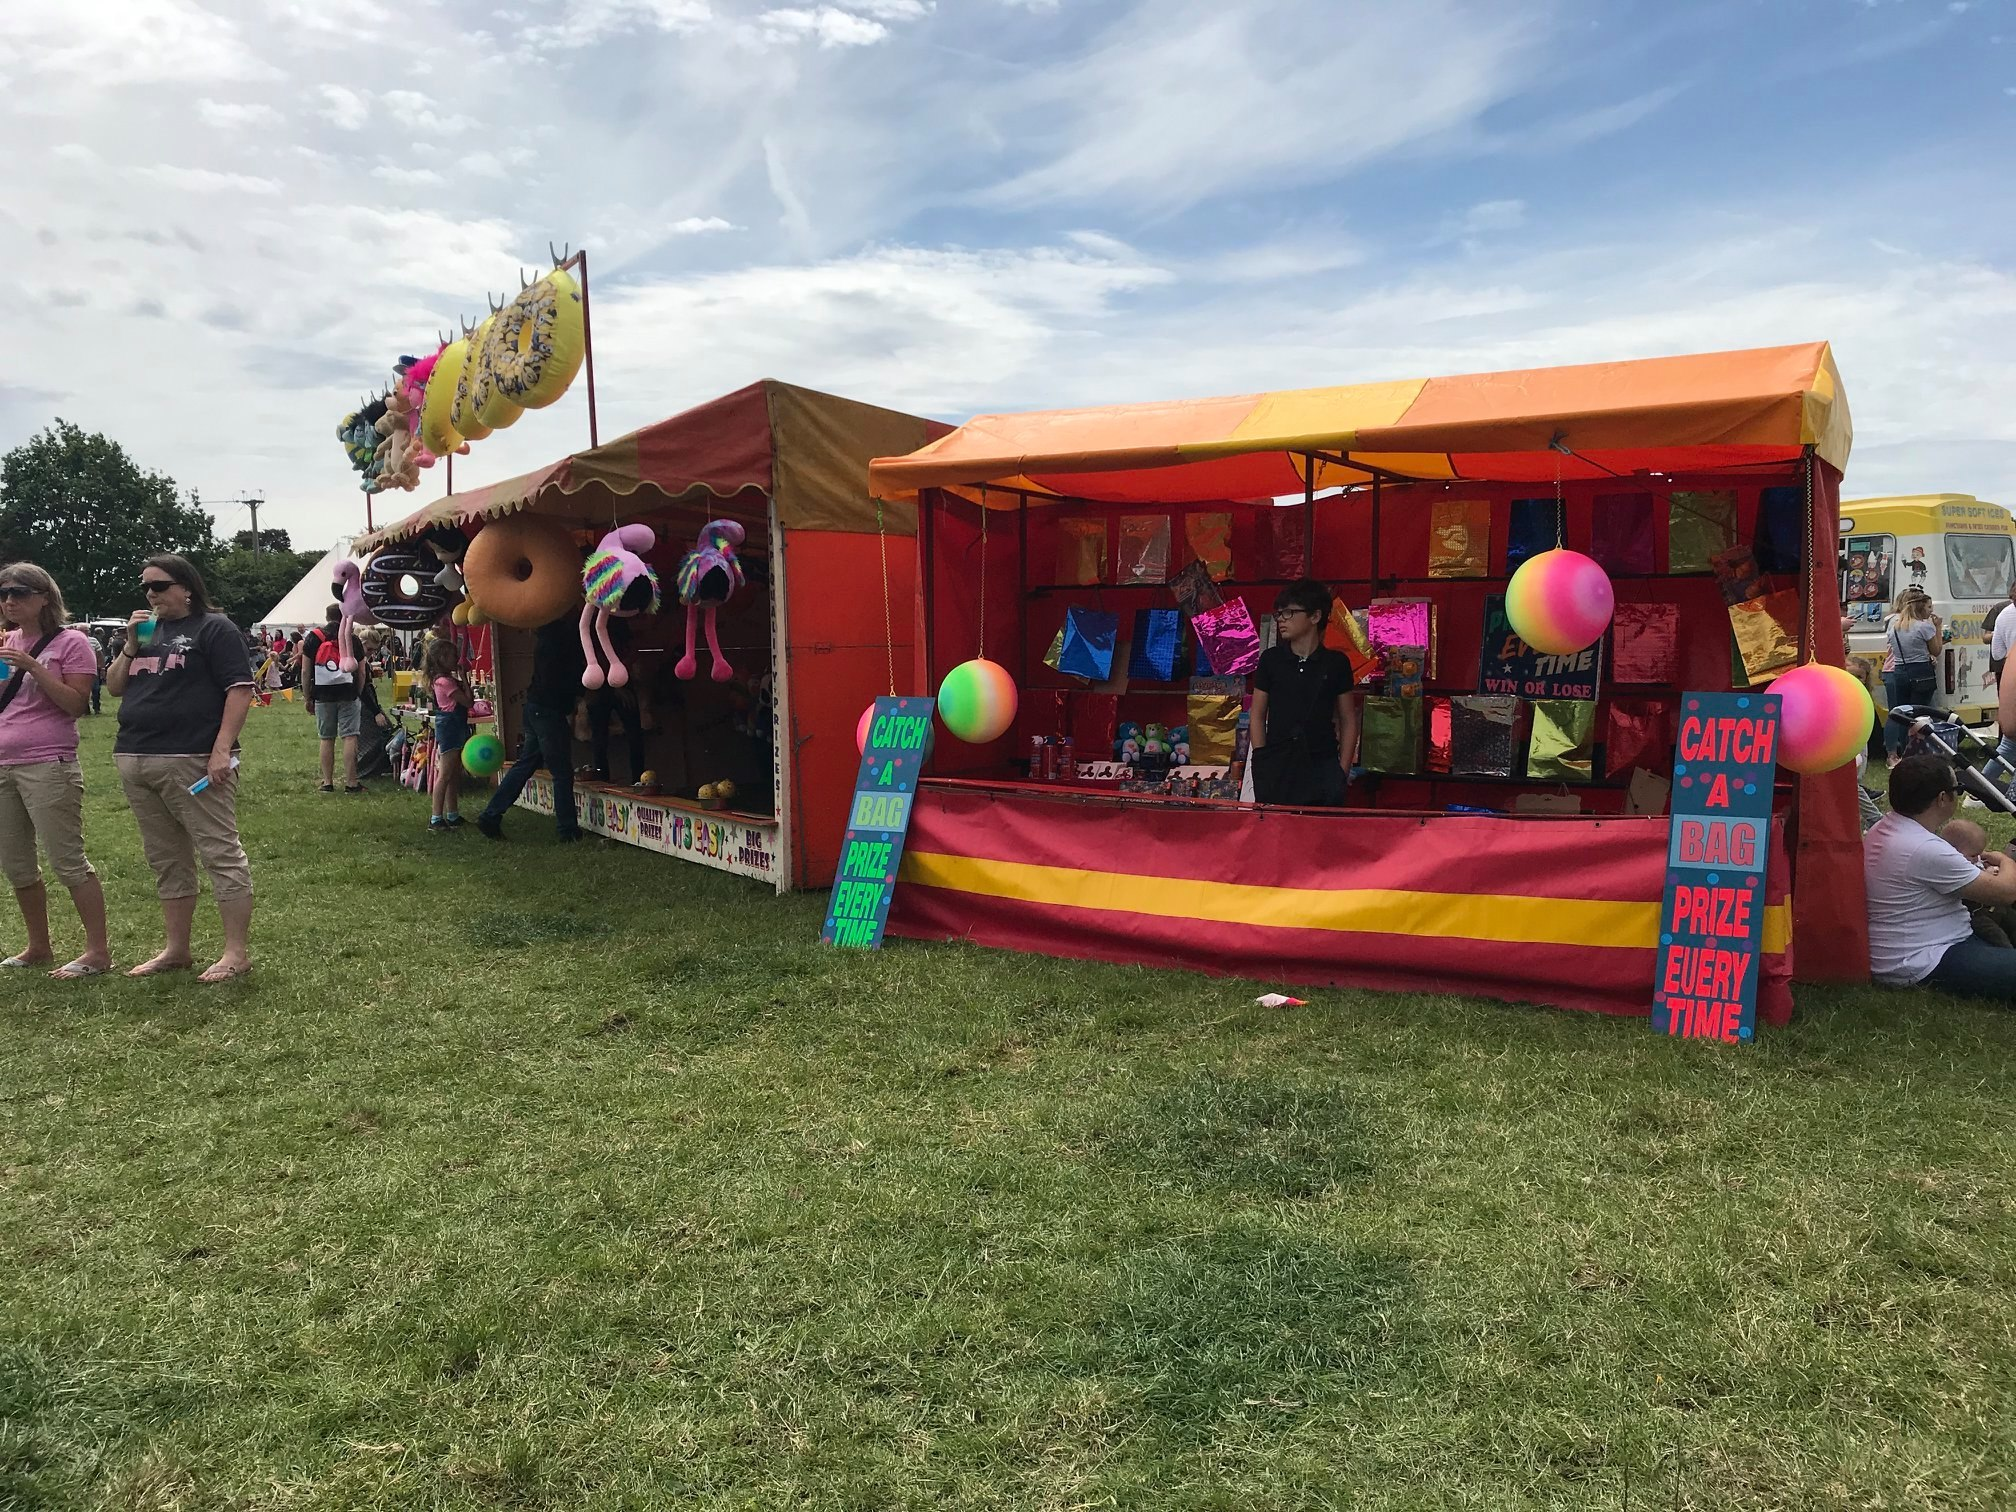 Tadley Treacle Fair June 2019